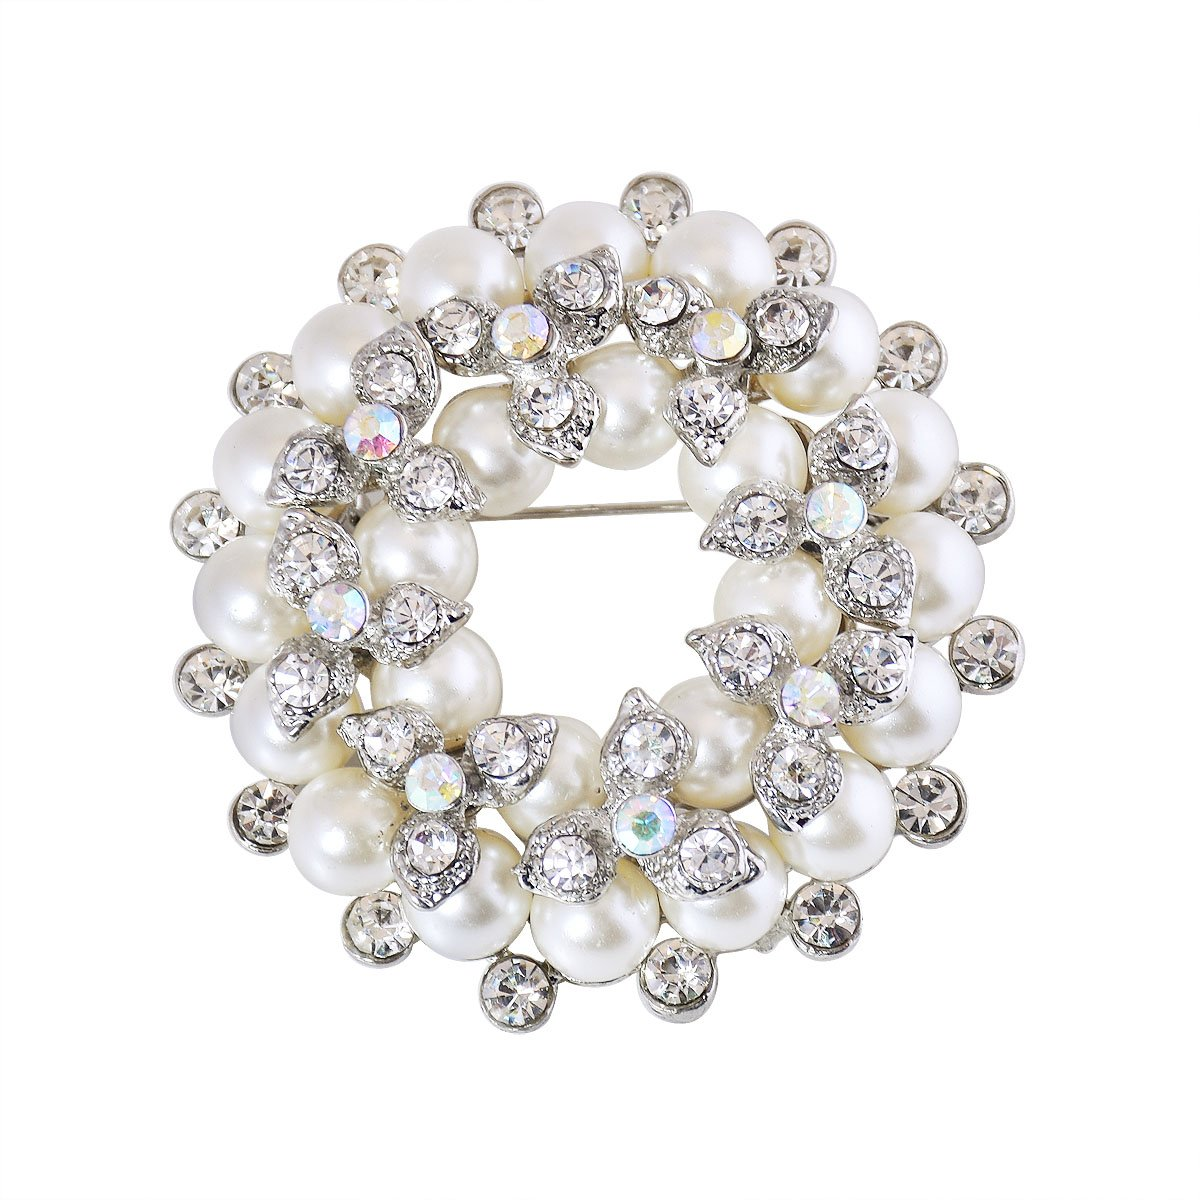 ElegantPark BP1709 Women Fashion Jewelry Double Floral Pearls Gift Dress Brooch Pins Silver